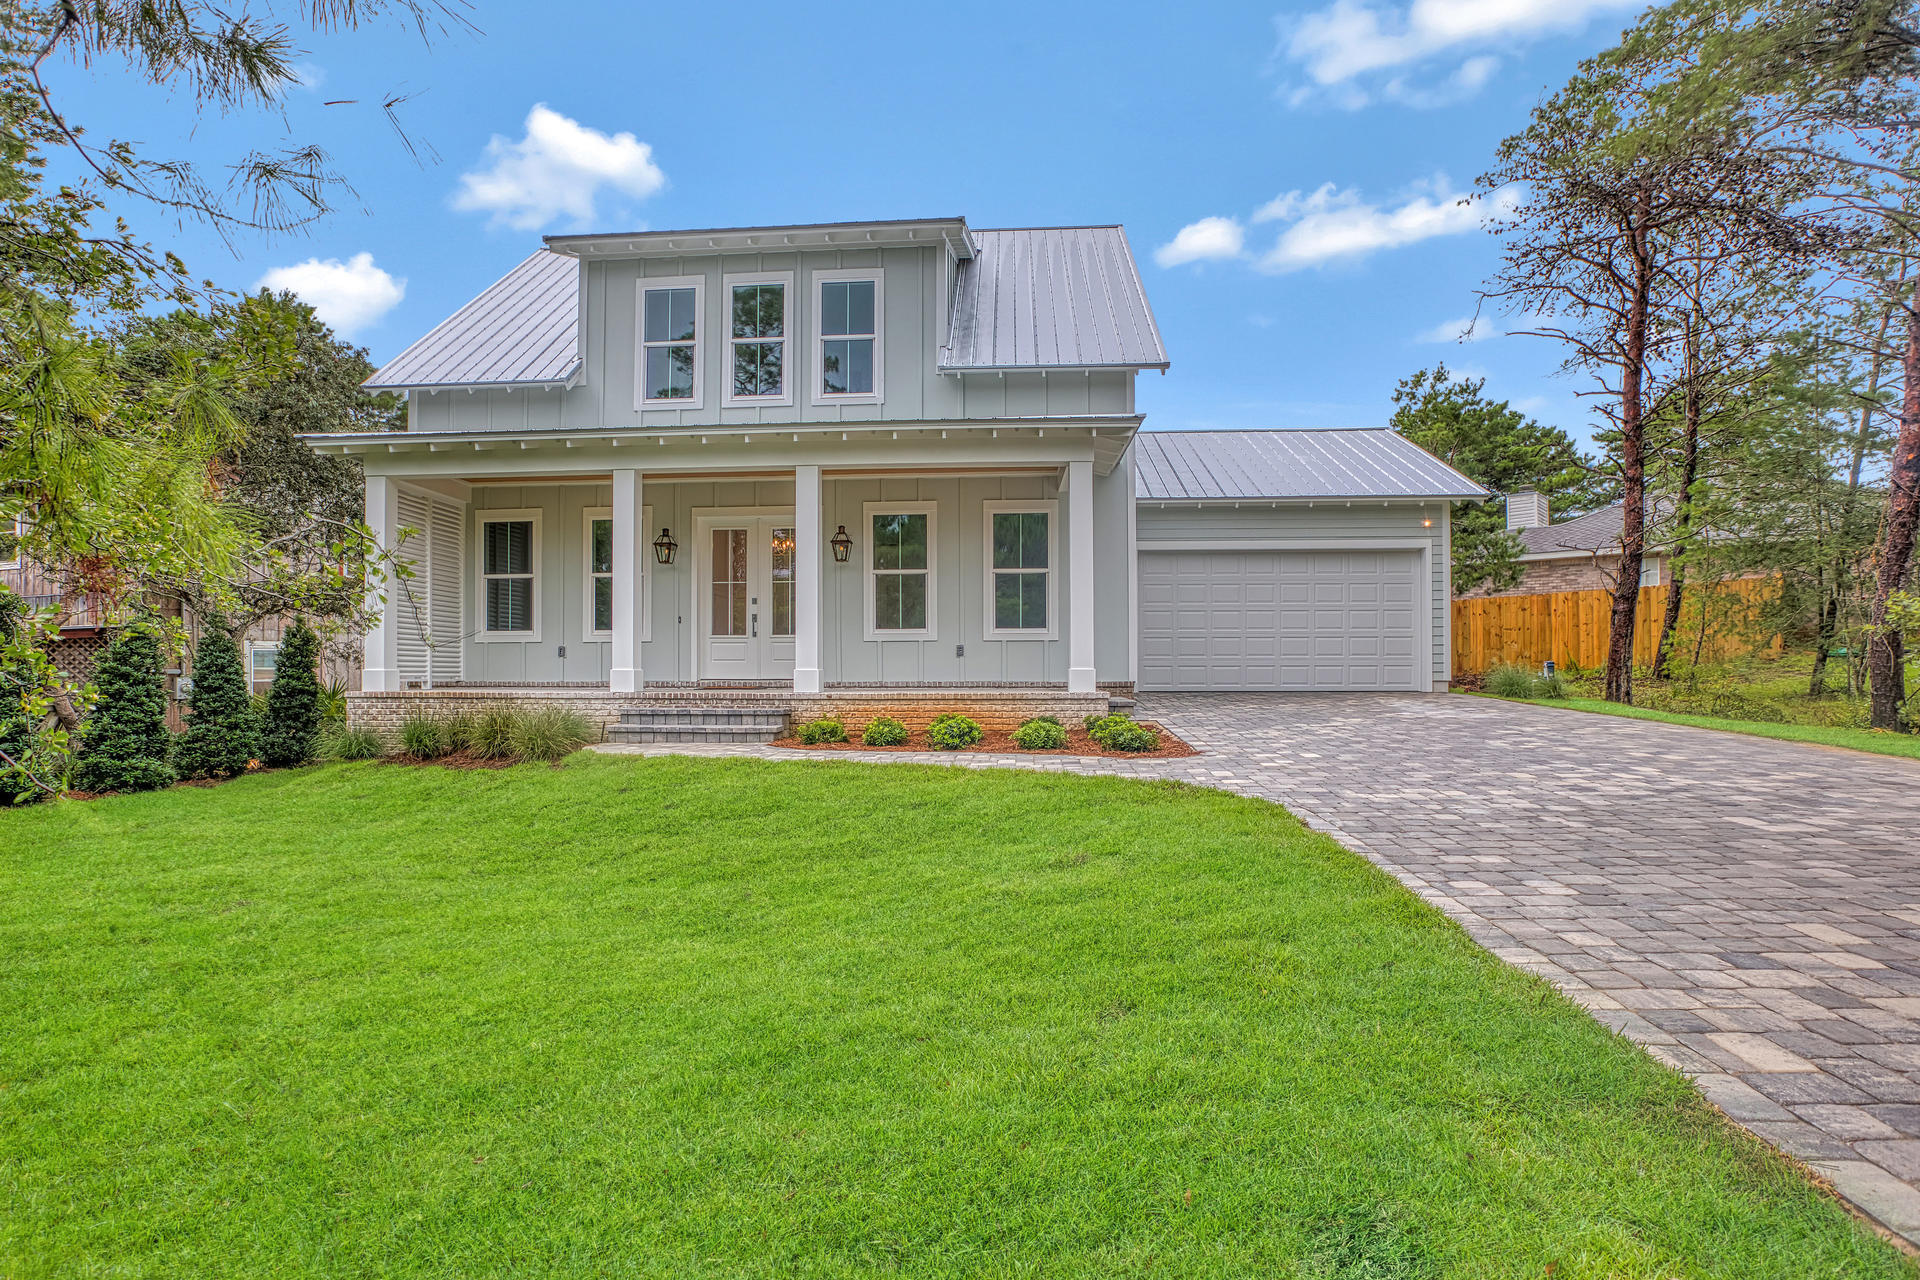 Photo of home for sale at 337 Hilltop, Santa Rosa Beach FL